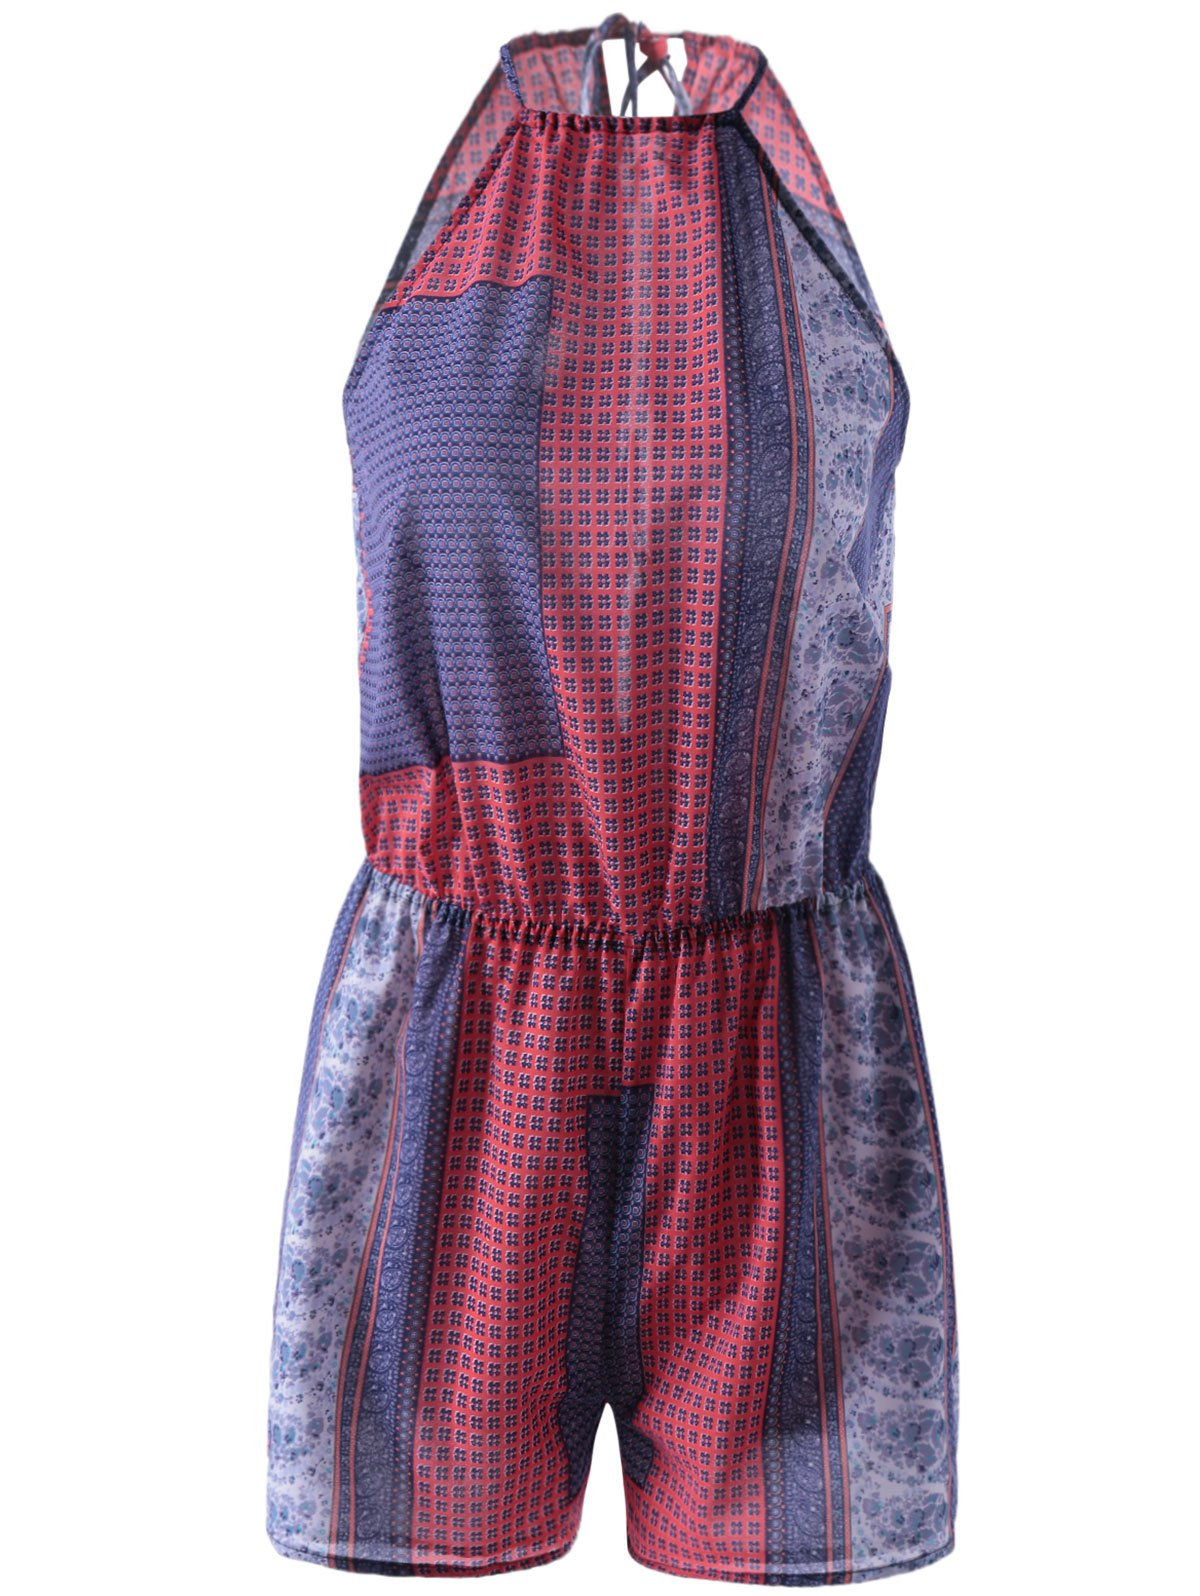 Fashionable Women's Halter Sleeveless Print Romper - BLUE/RED L